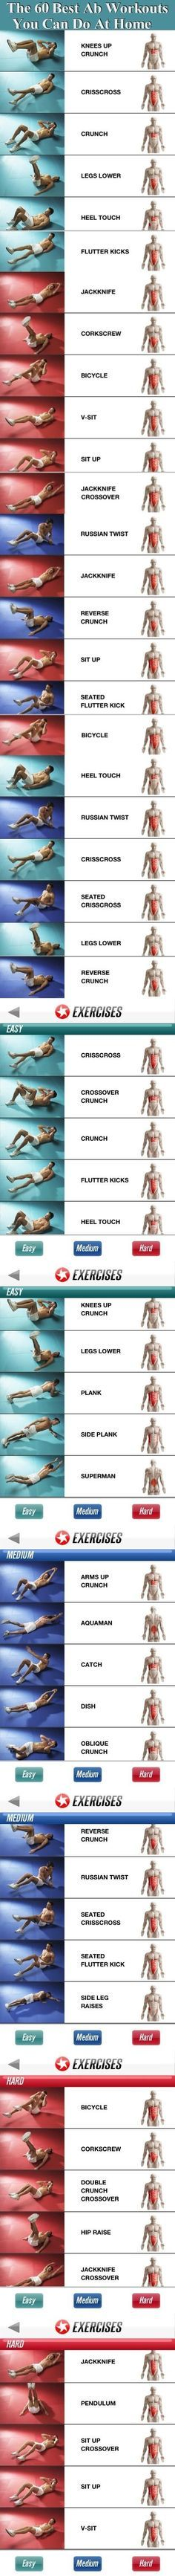 The 60 Best Ab Workouts You Can Do From Home Pictures, Photos, and Images for Facebook, Tumblr, Pinterest, and Twitter::